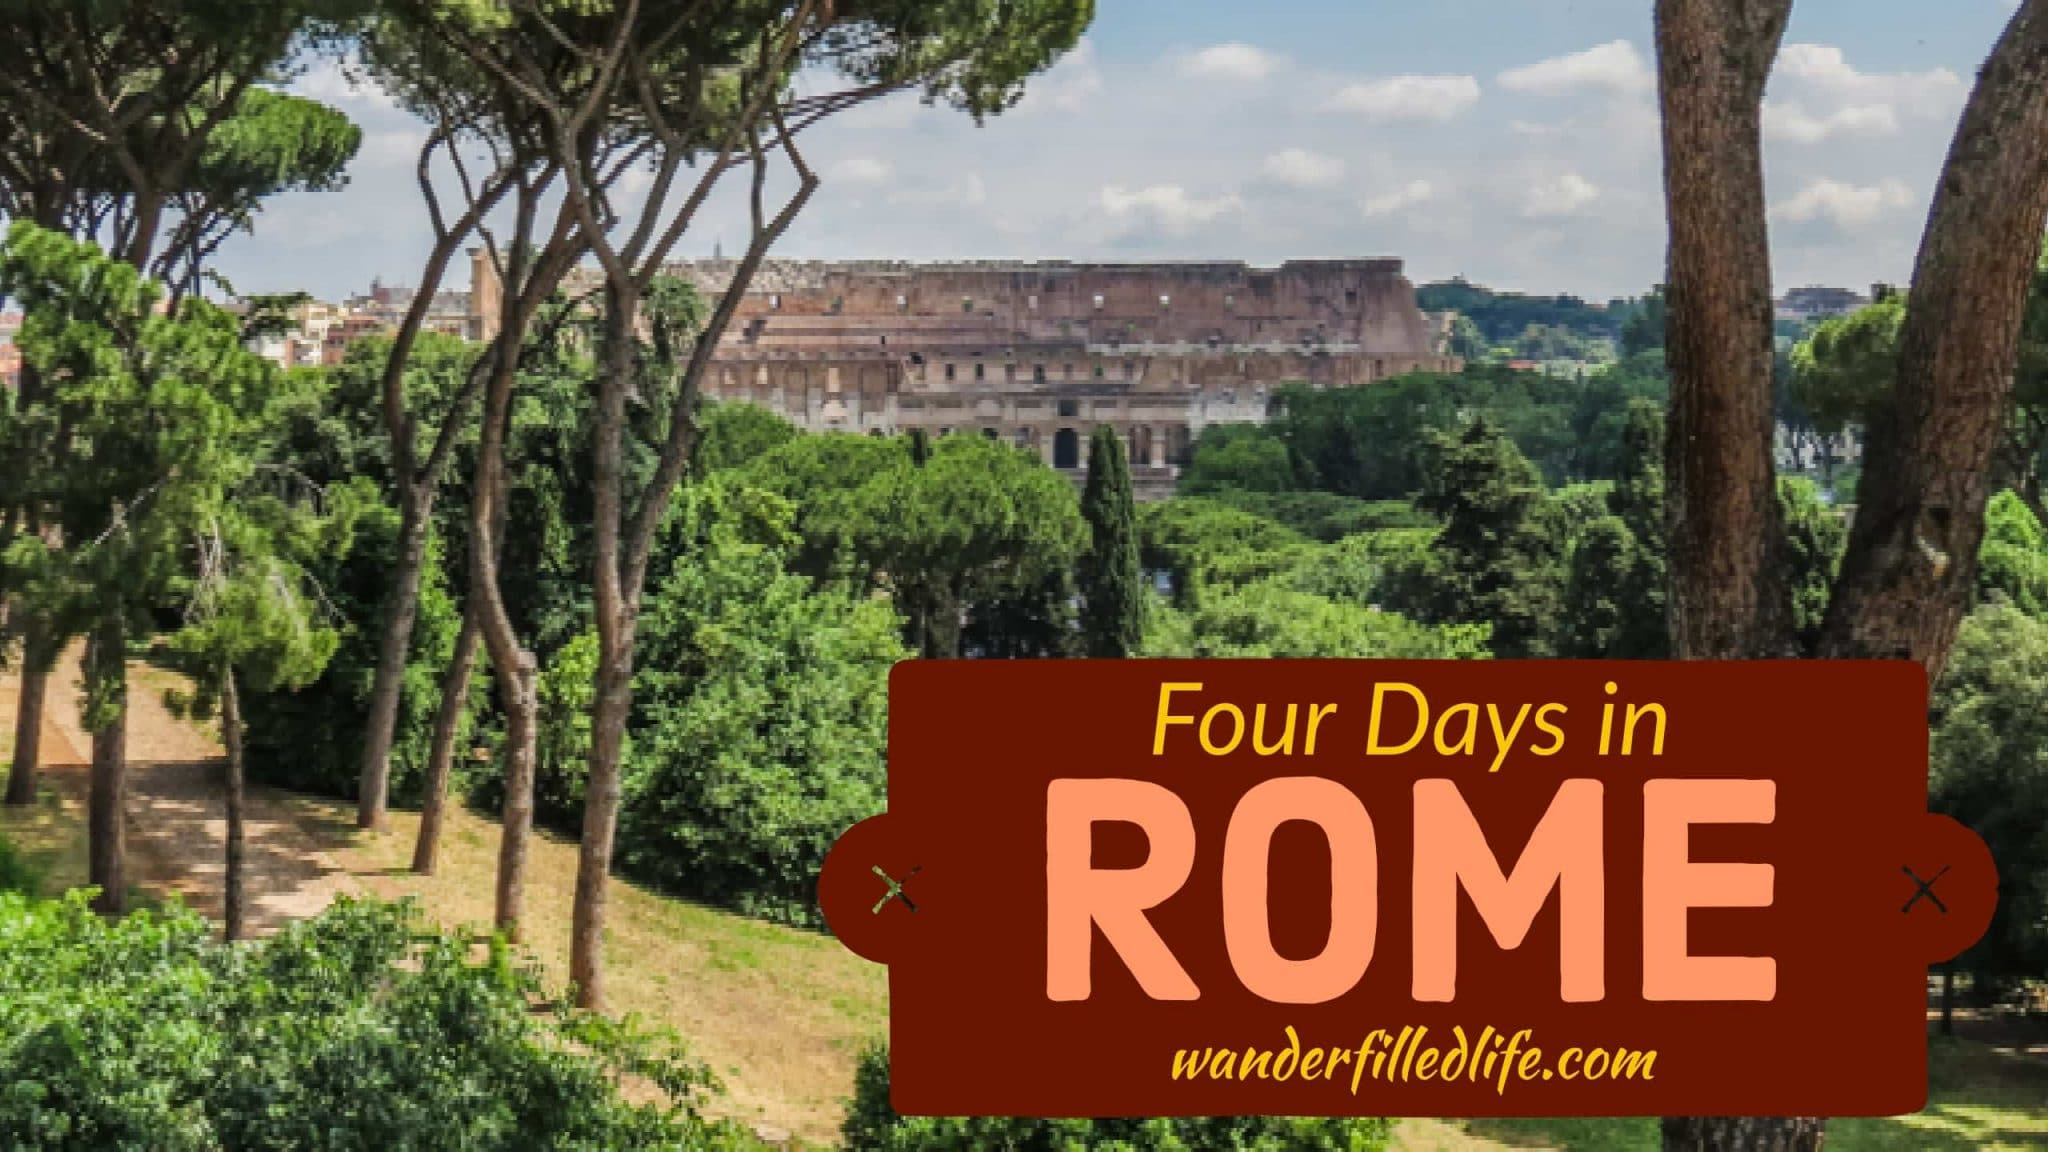 Four Days in Rome